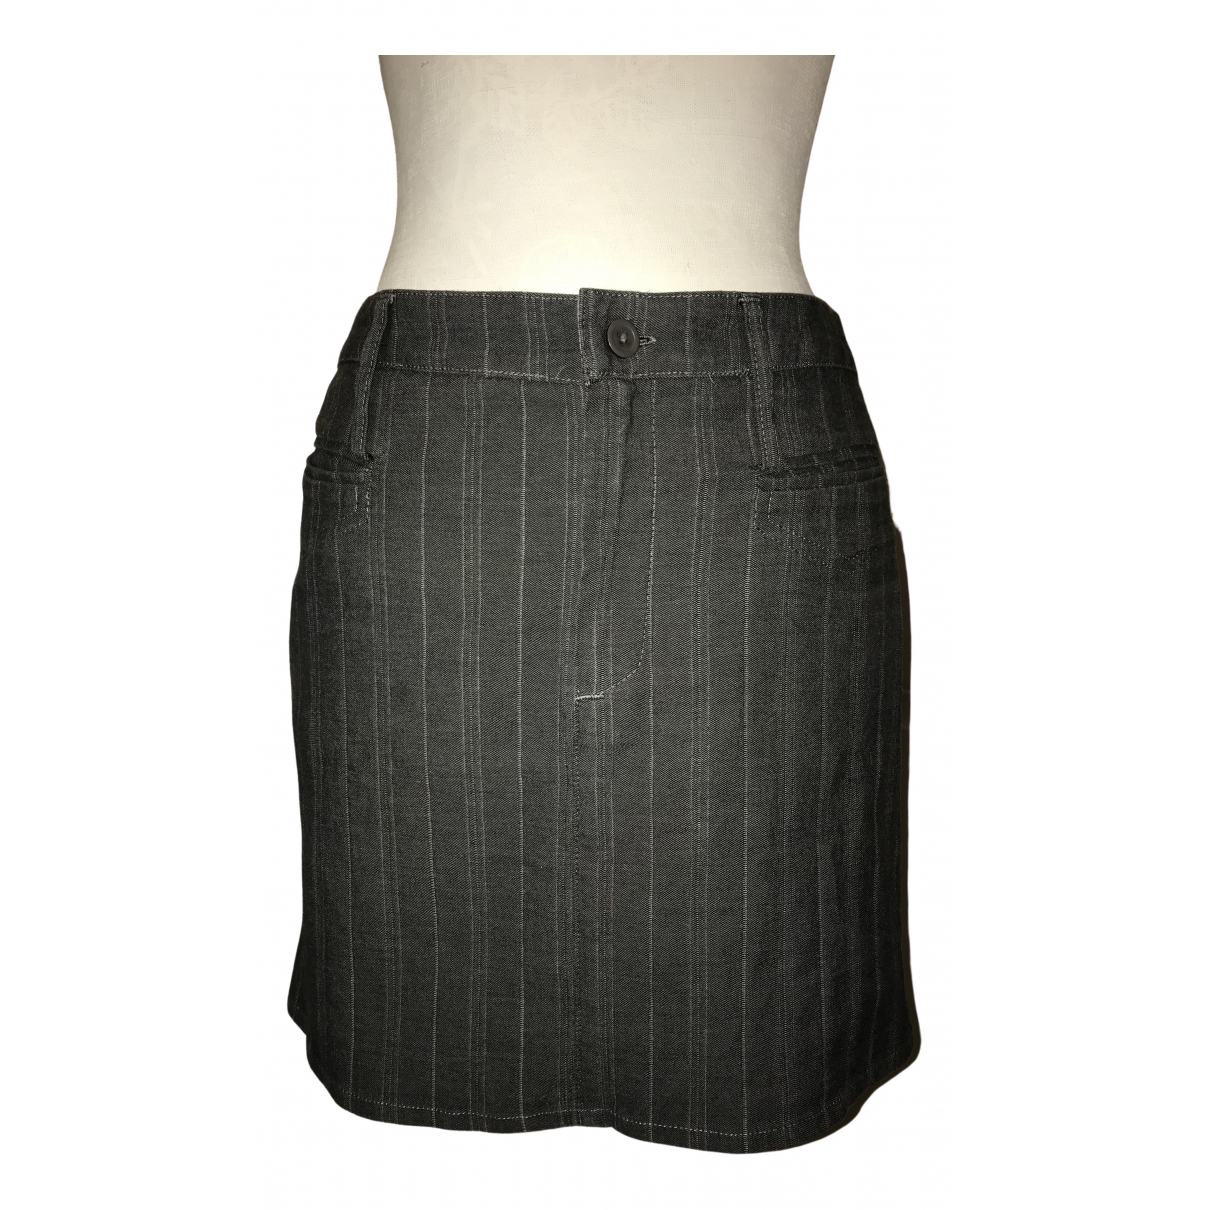 D&g \N Grey Cotton skirt for Women S International